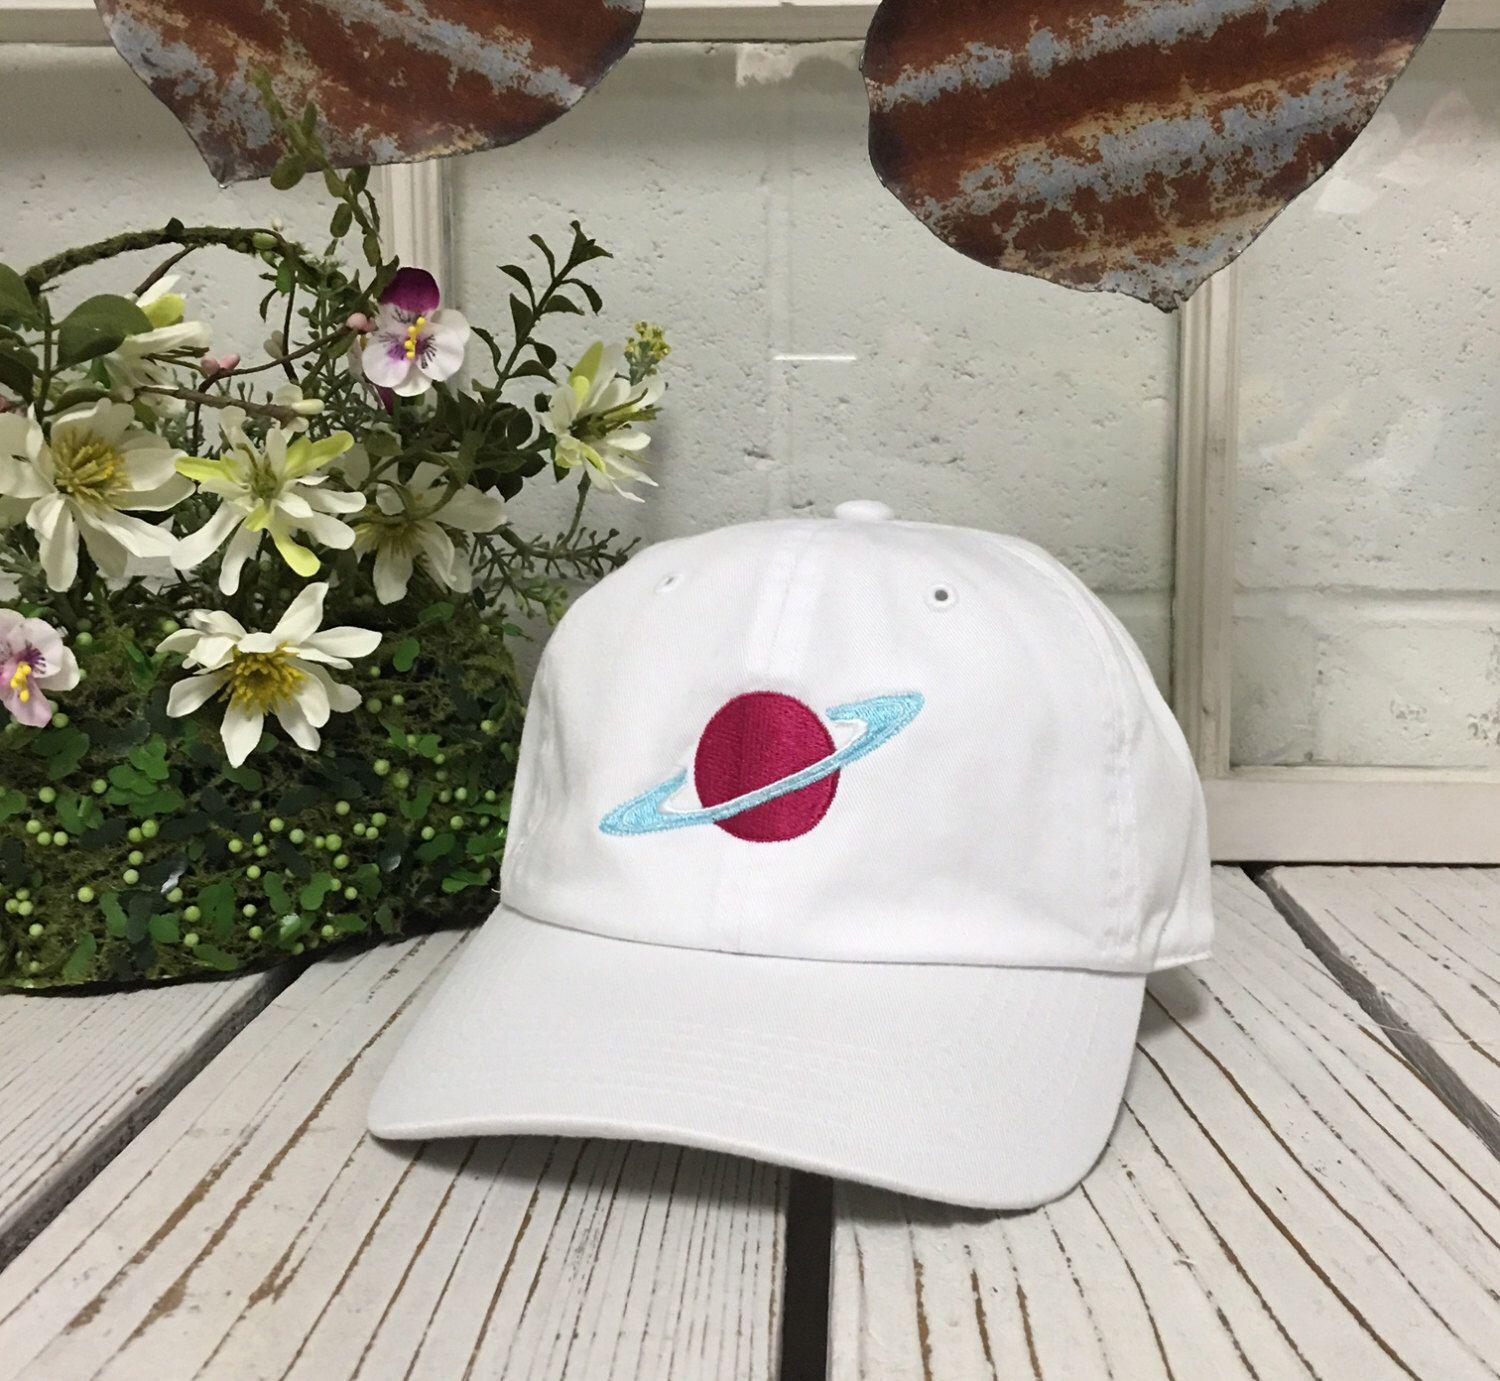 633502b9999f8 Vintage PLANET SATURN Baseball Cap Low Profile Dad Hats Baseball Hat  Embroidery White by TheHatConnection on